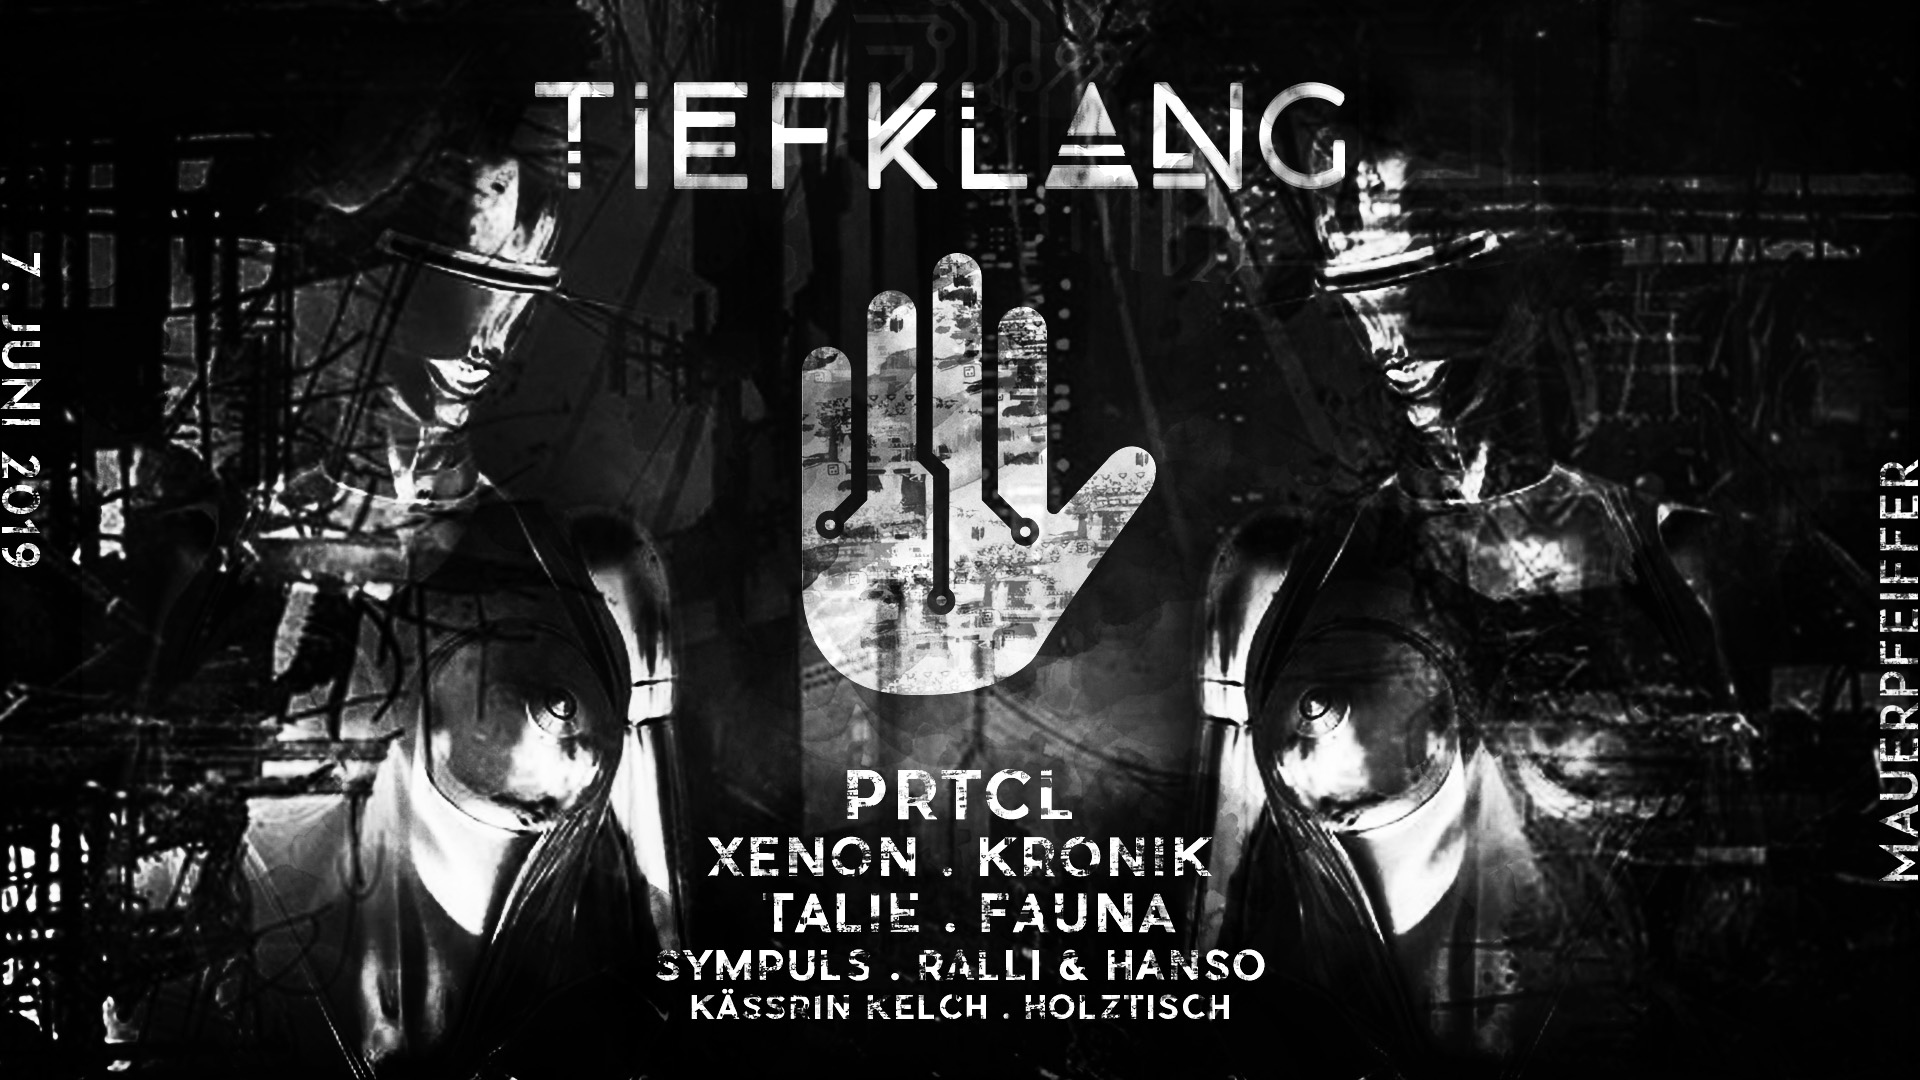 Tiefklang invites Humanoid w/ PRTCL & Xenon